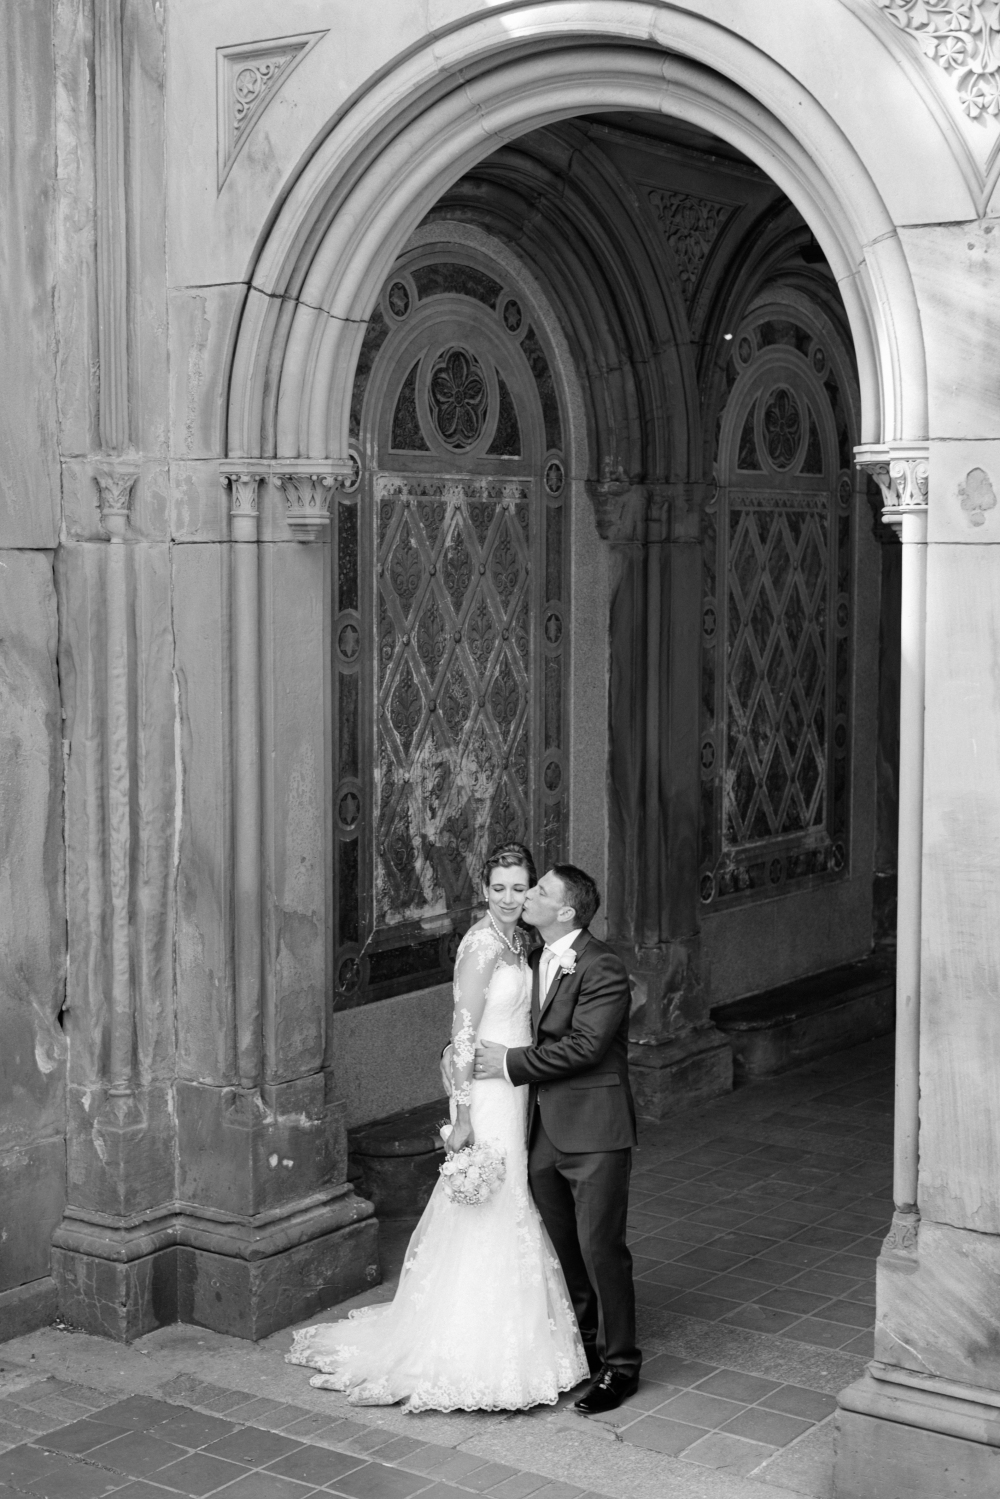 Wagner-cove-central-park-wedding-SS-282